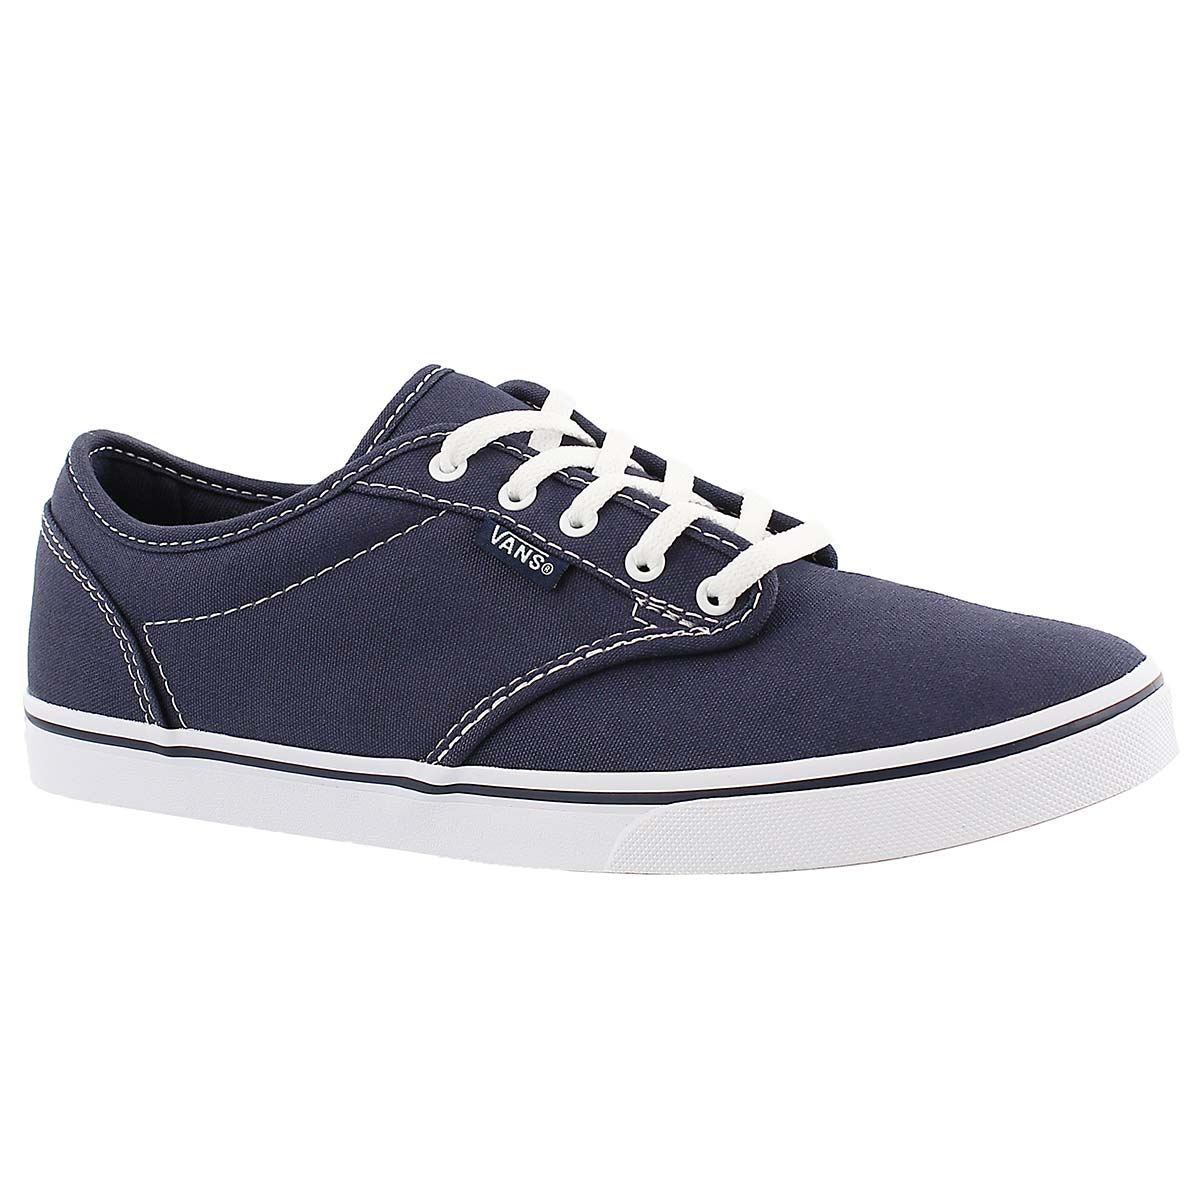 Women's ATWOOD LOW navy lace up sneakers